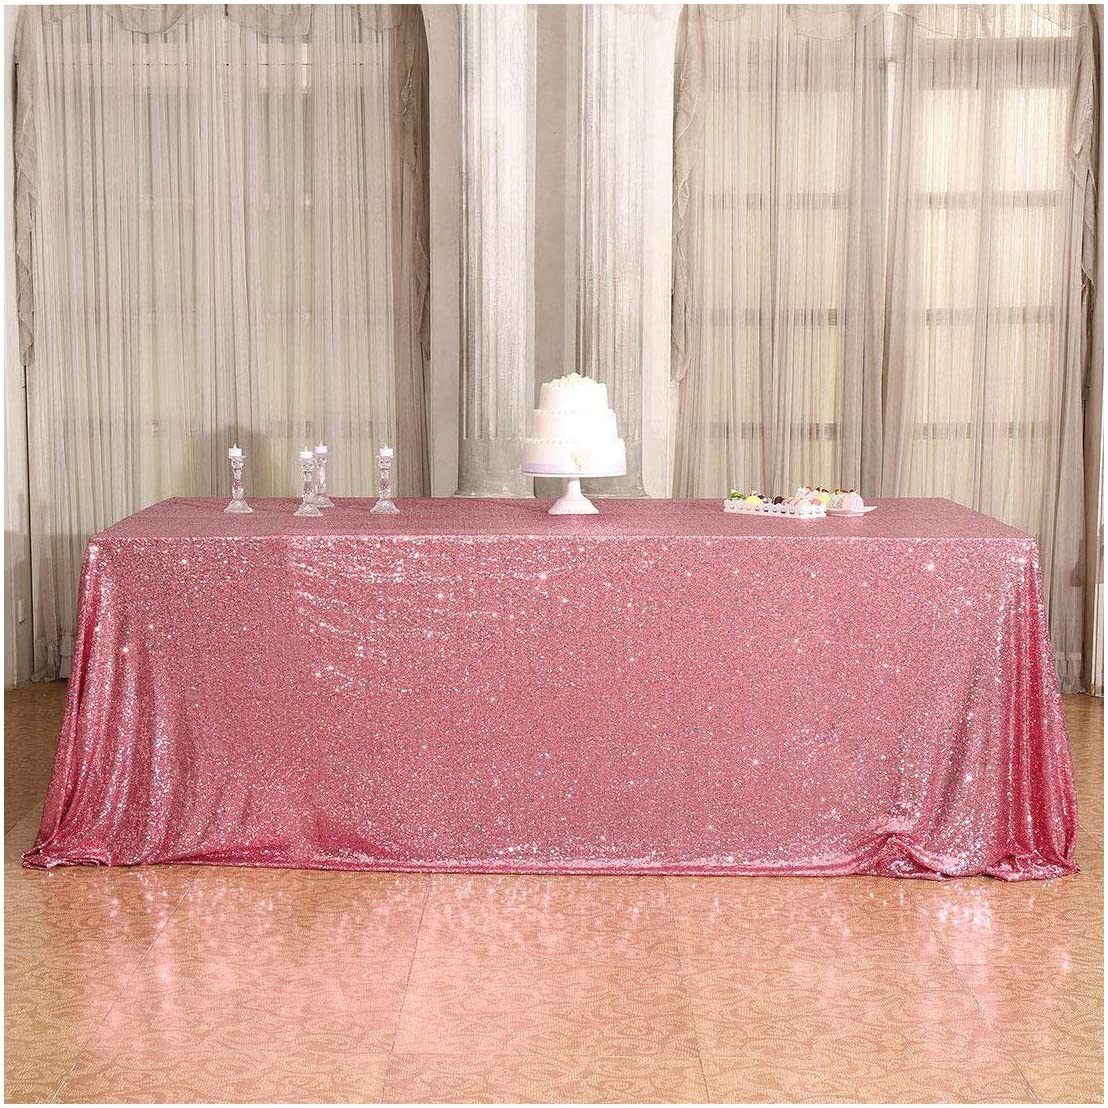 Poise3EHome 50×80'' Rectangle Deluxe Sequin Party for Cak Tablecloth Dedication